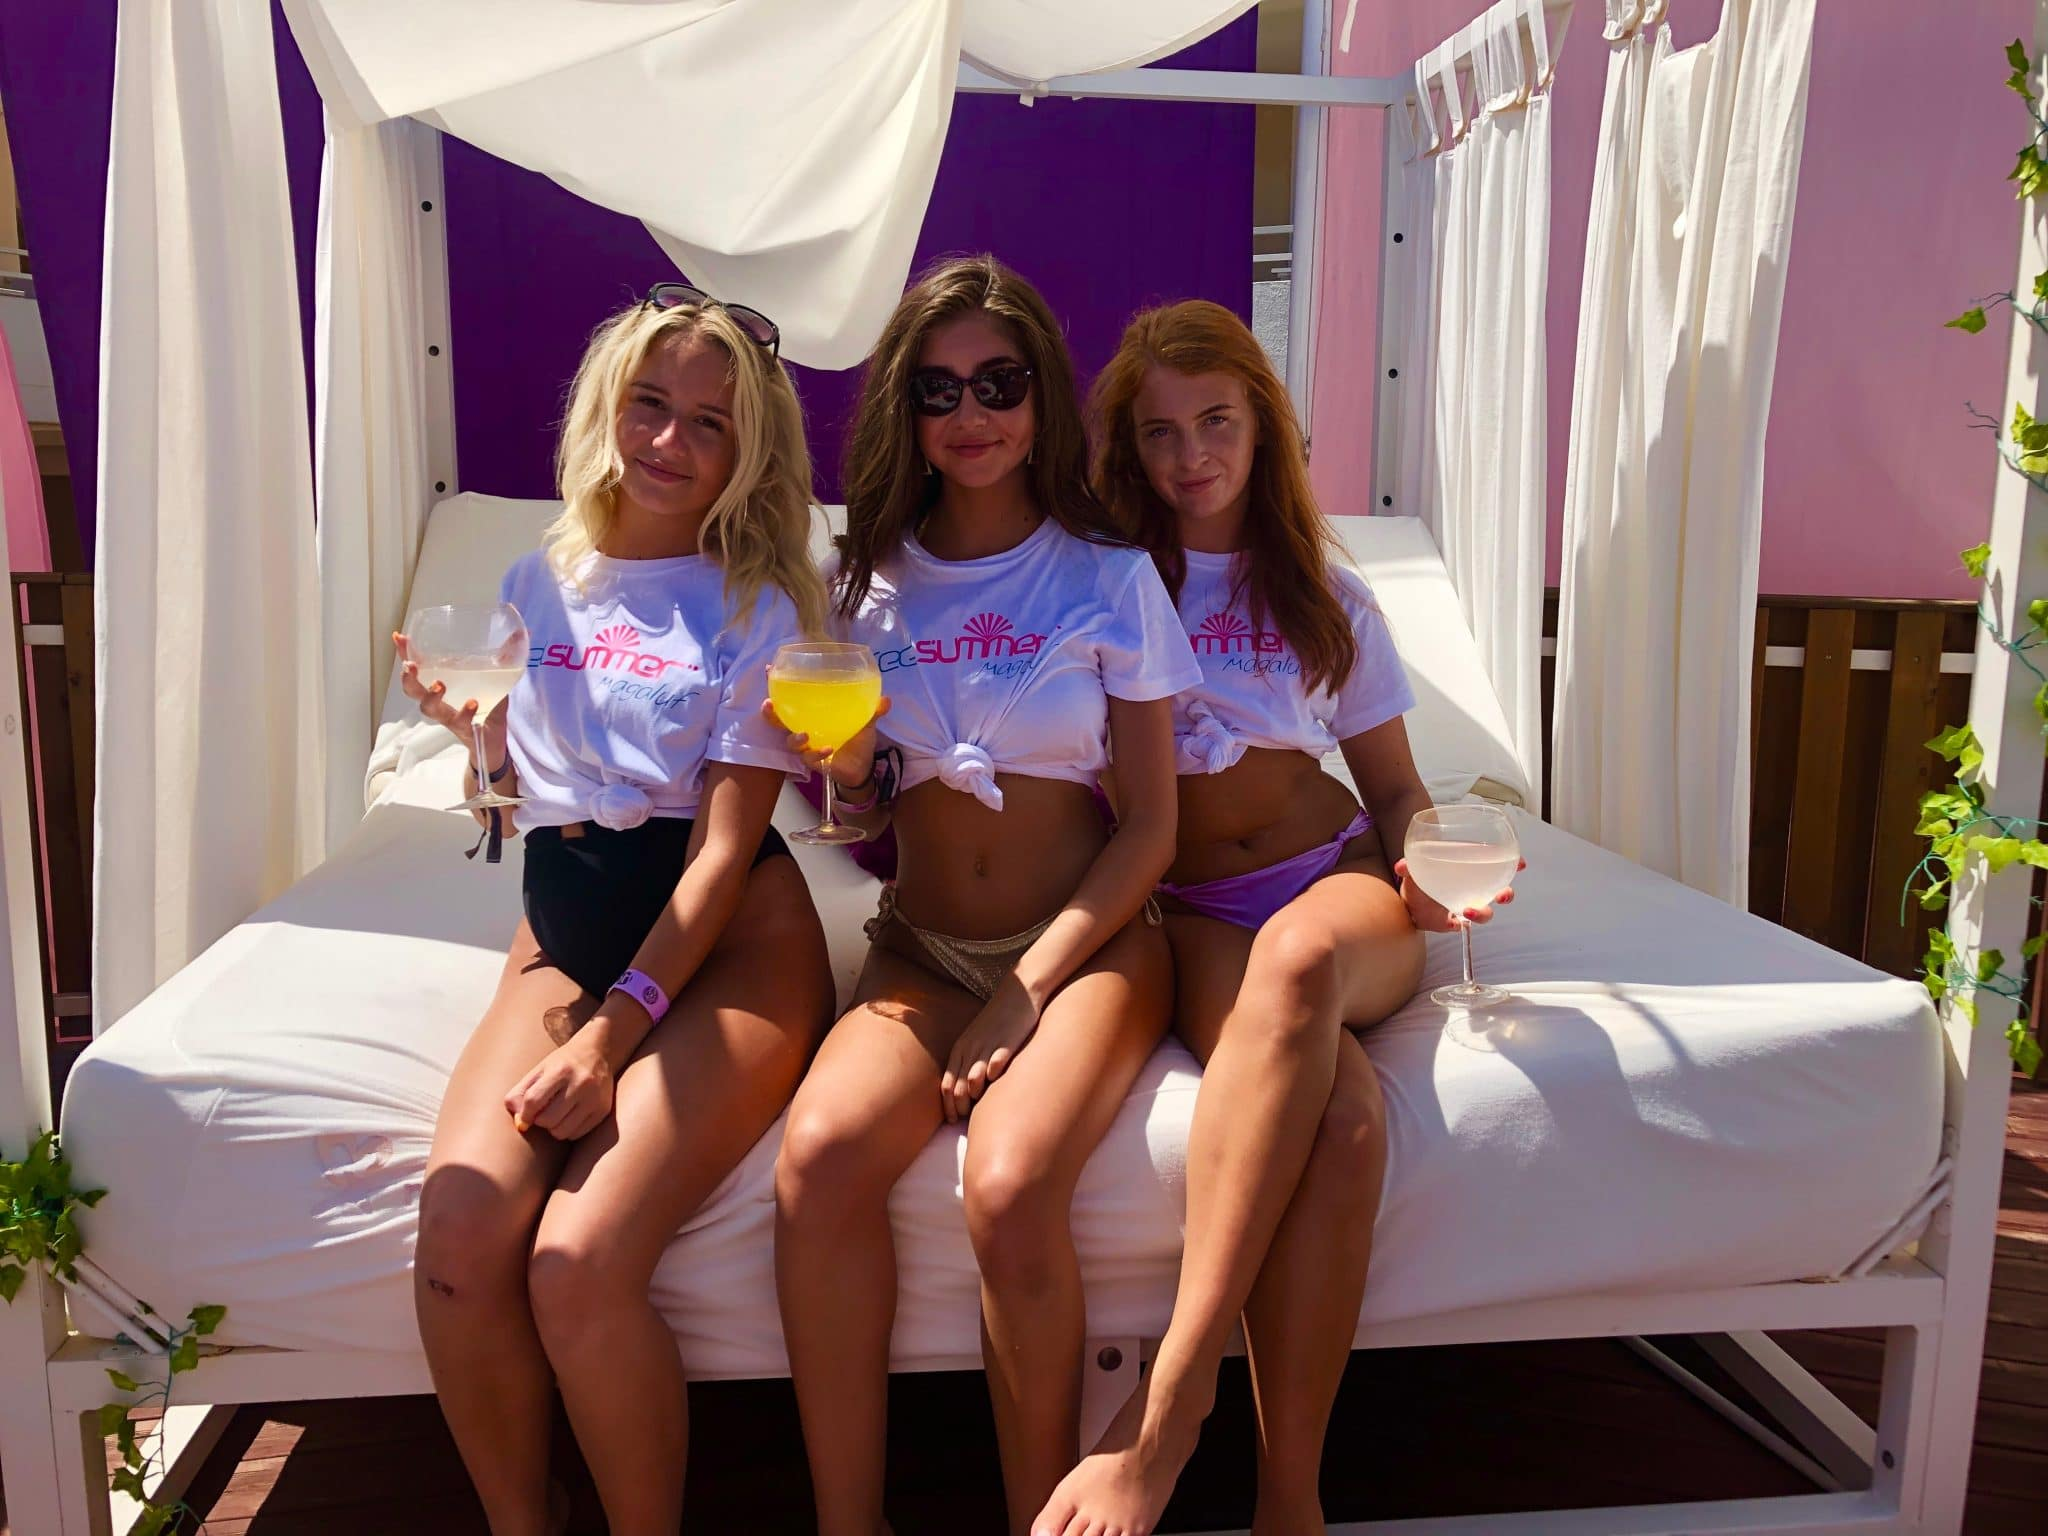 feelsummer-customer-magaluf-events8